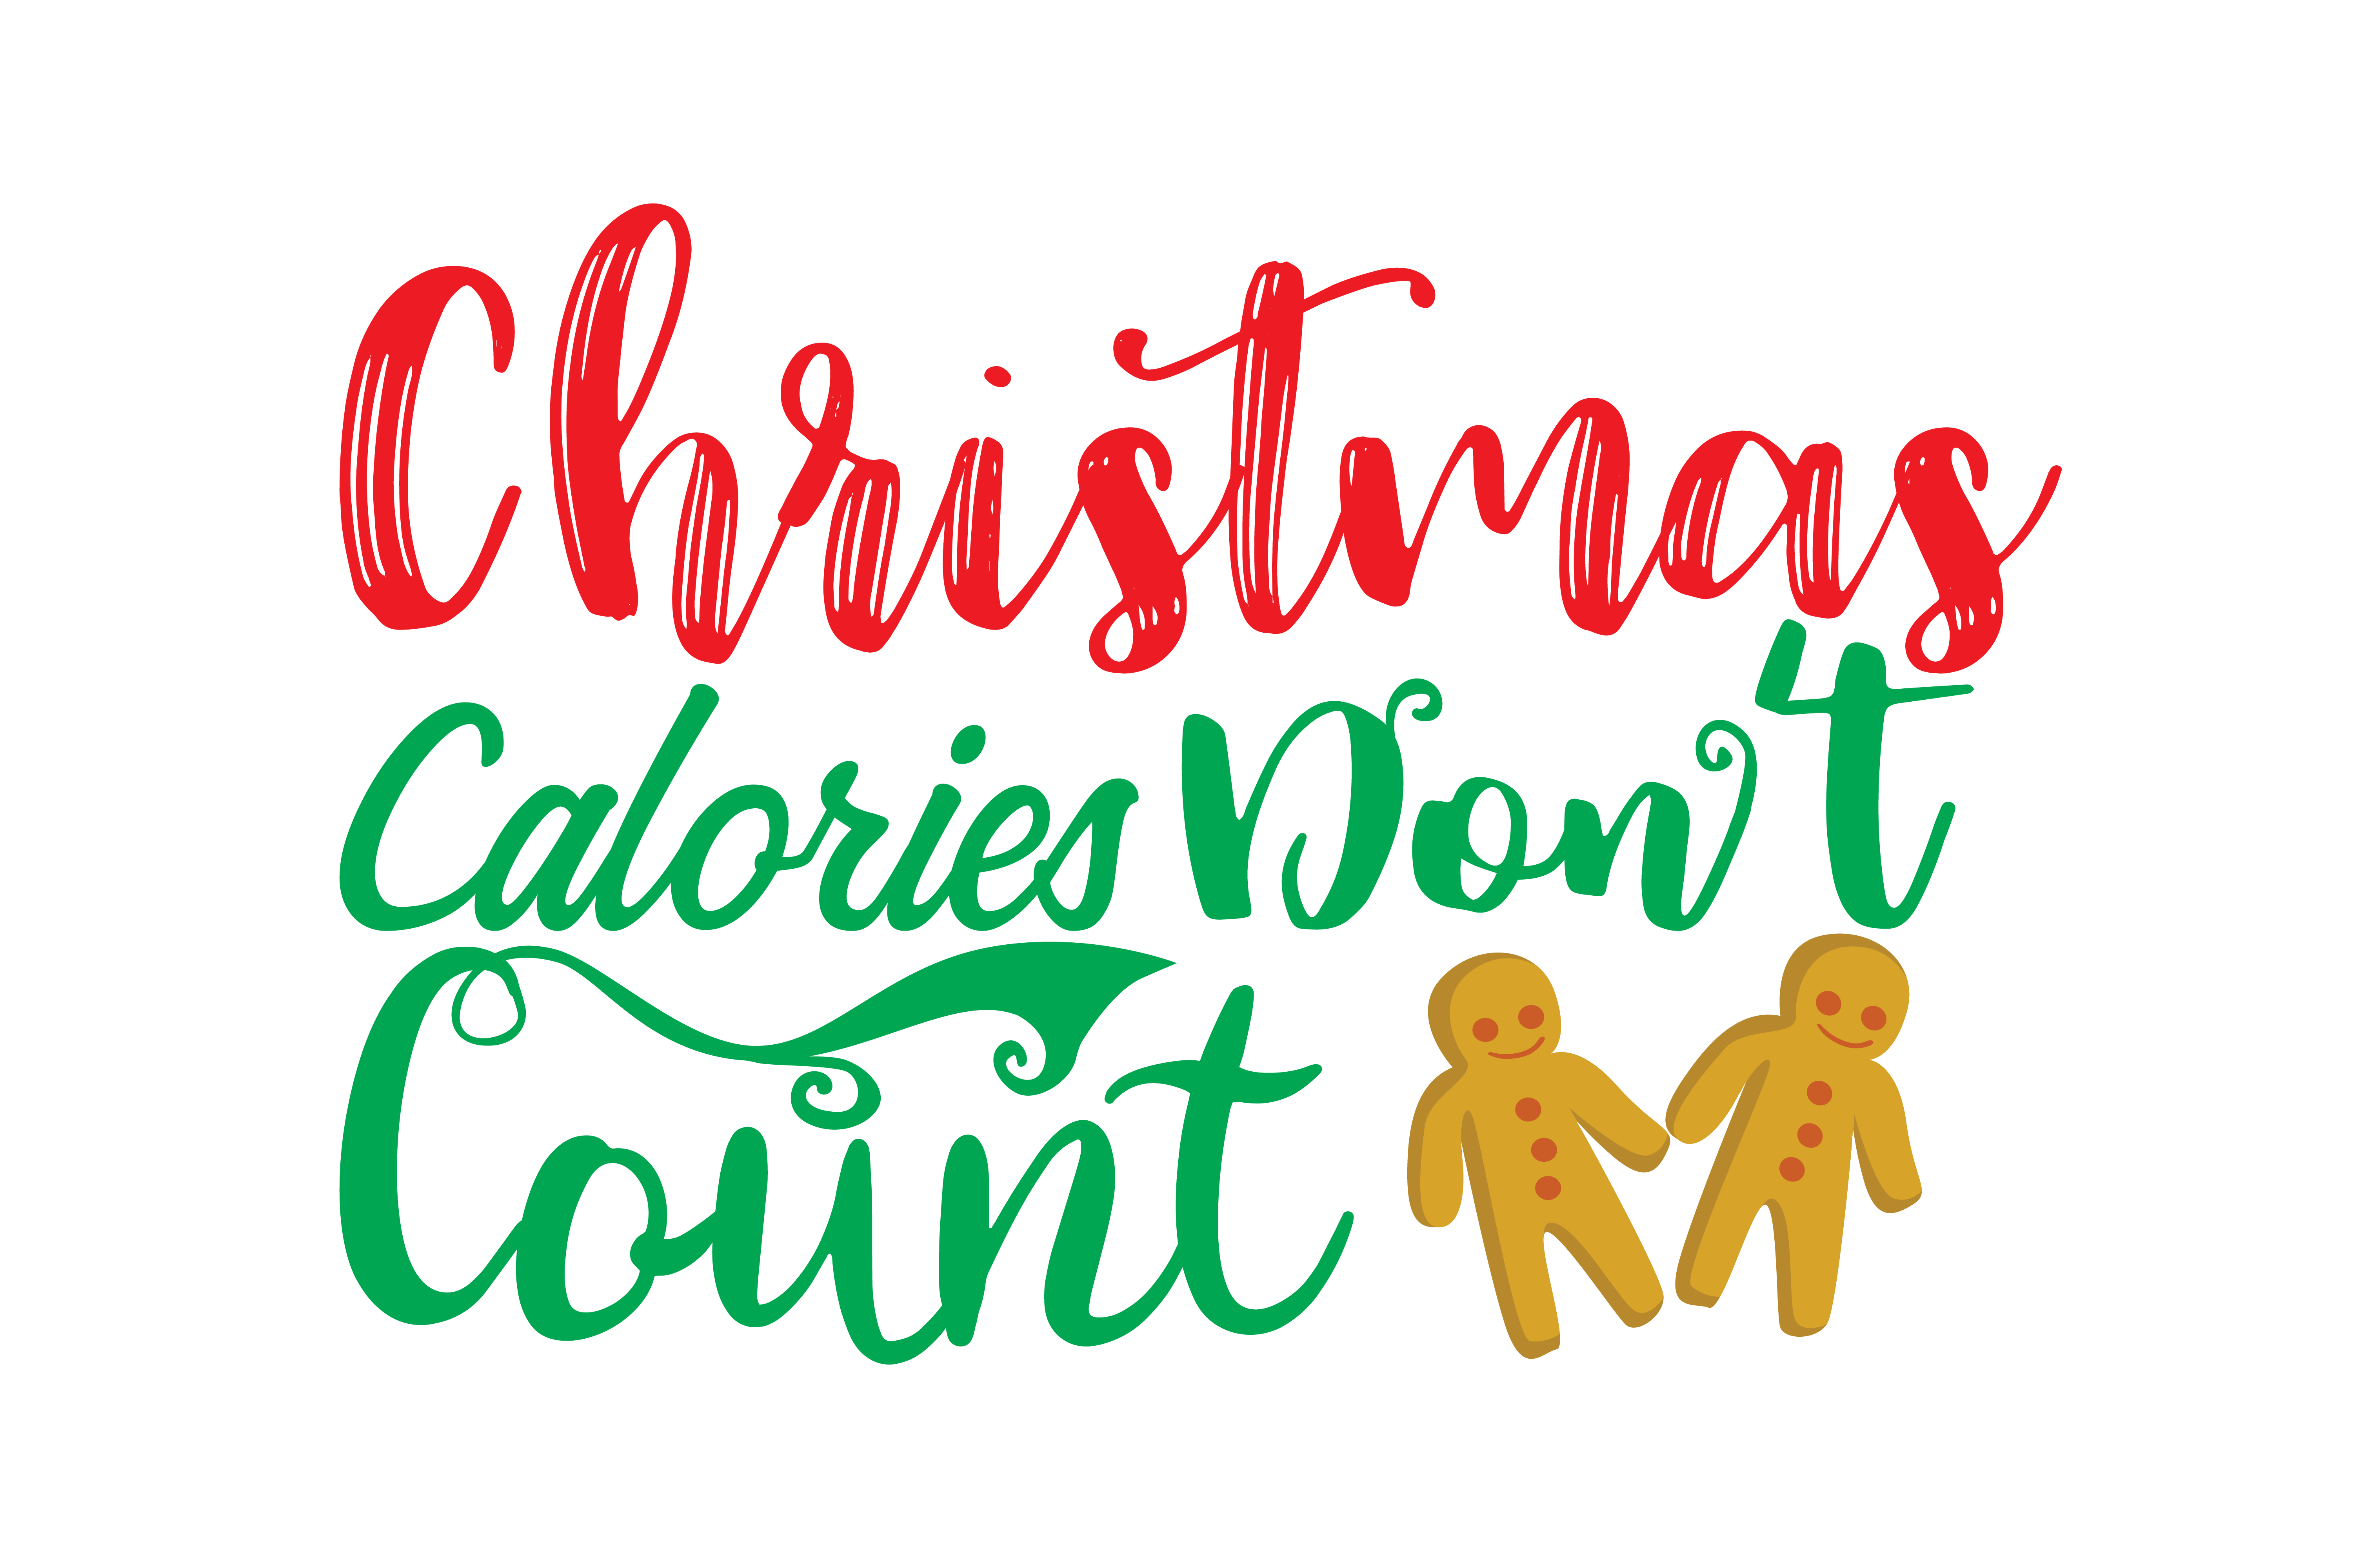 Download Free Christmas Calories Don T Count Graphic By Thelucky Creative for Cricut Explore, Silhouette and other cutting machines.